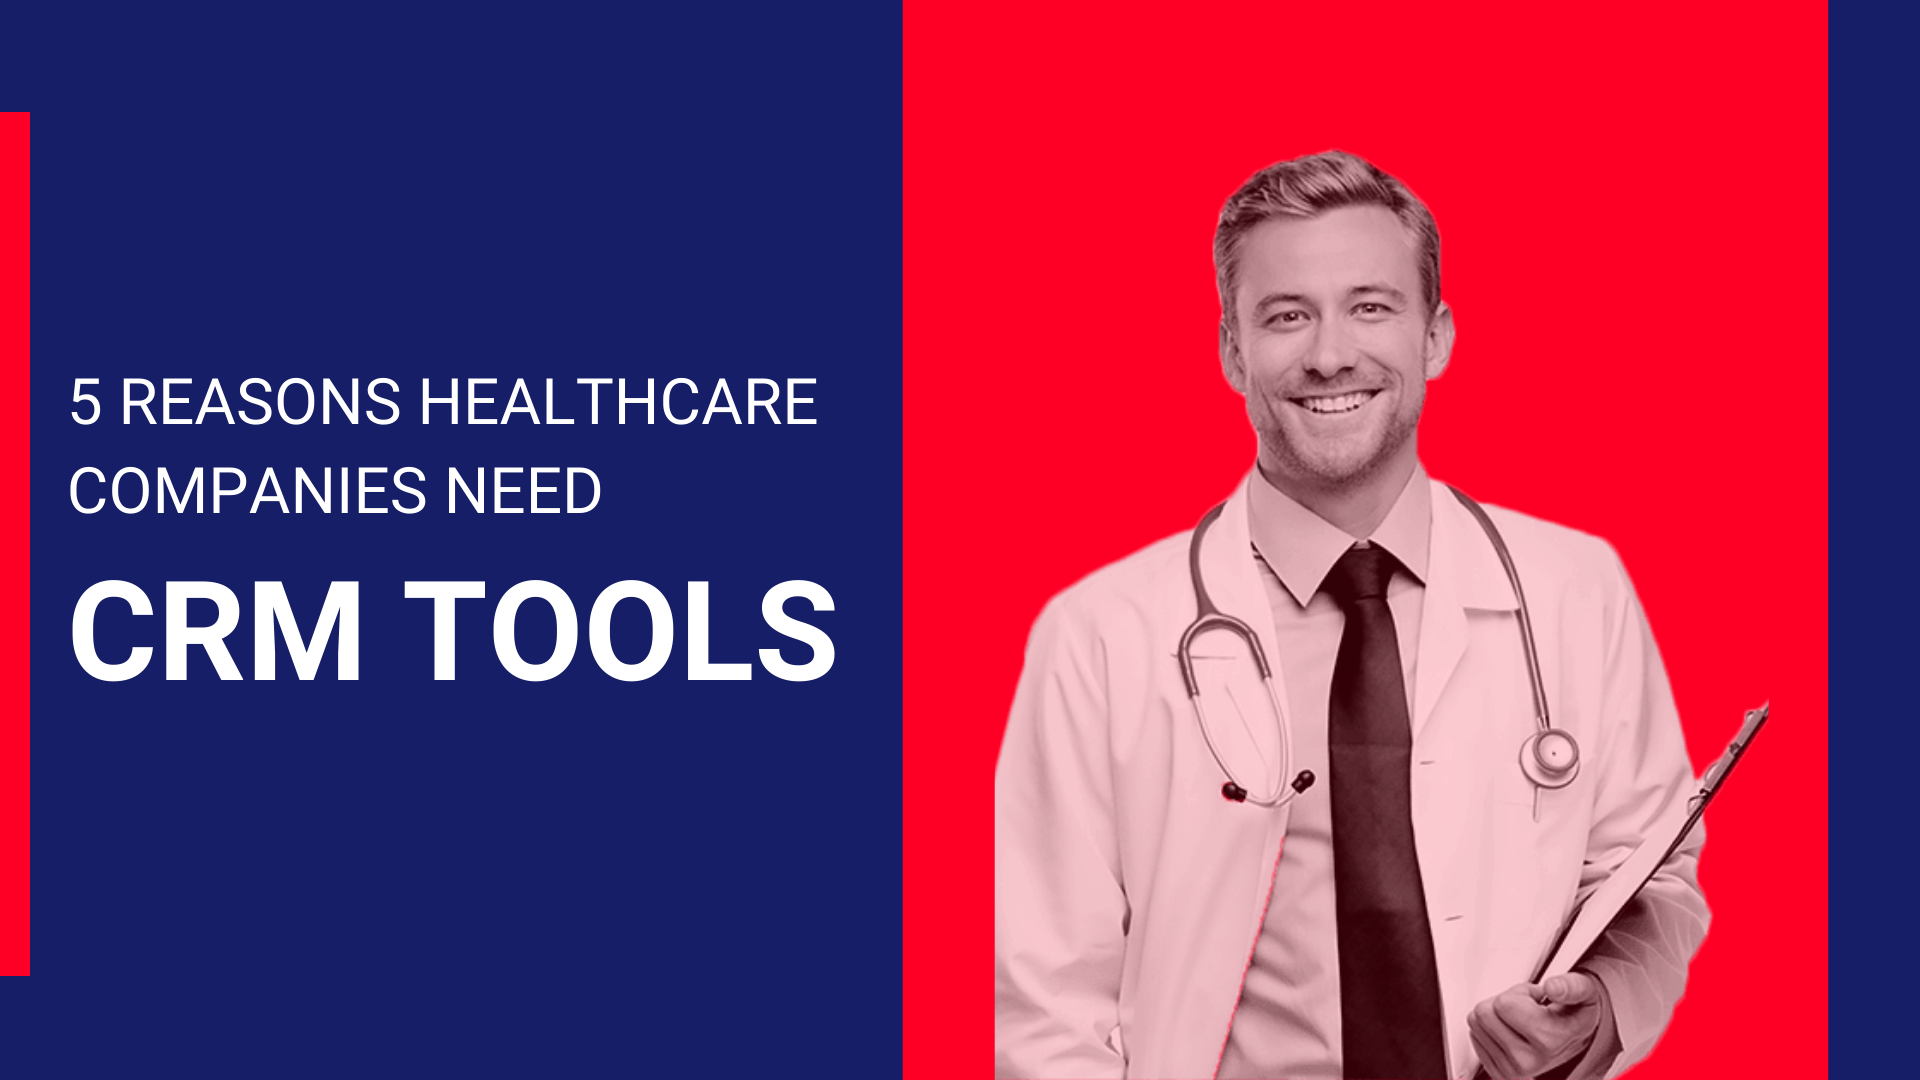 Five Reasons Healthcare Companies Need Customer Relationship Management (CRM) Tools